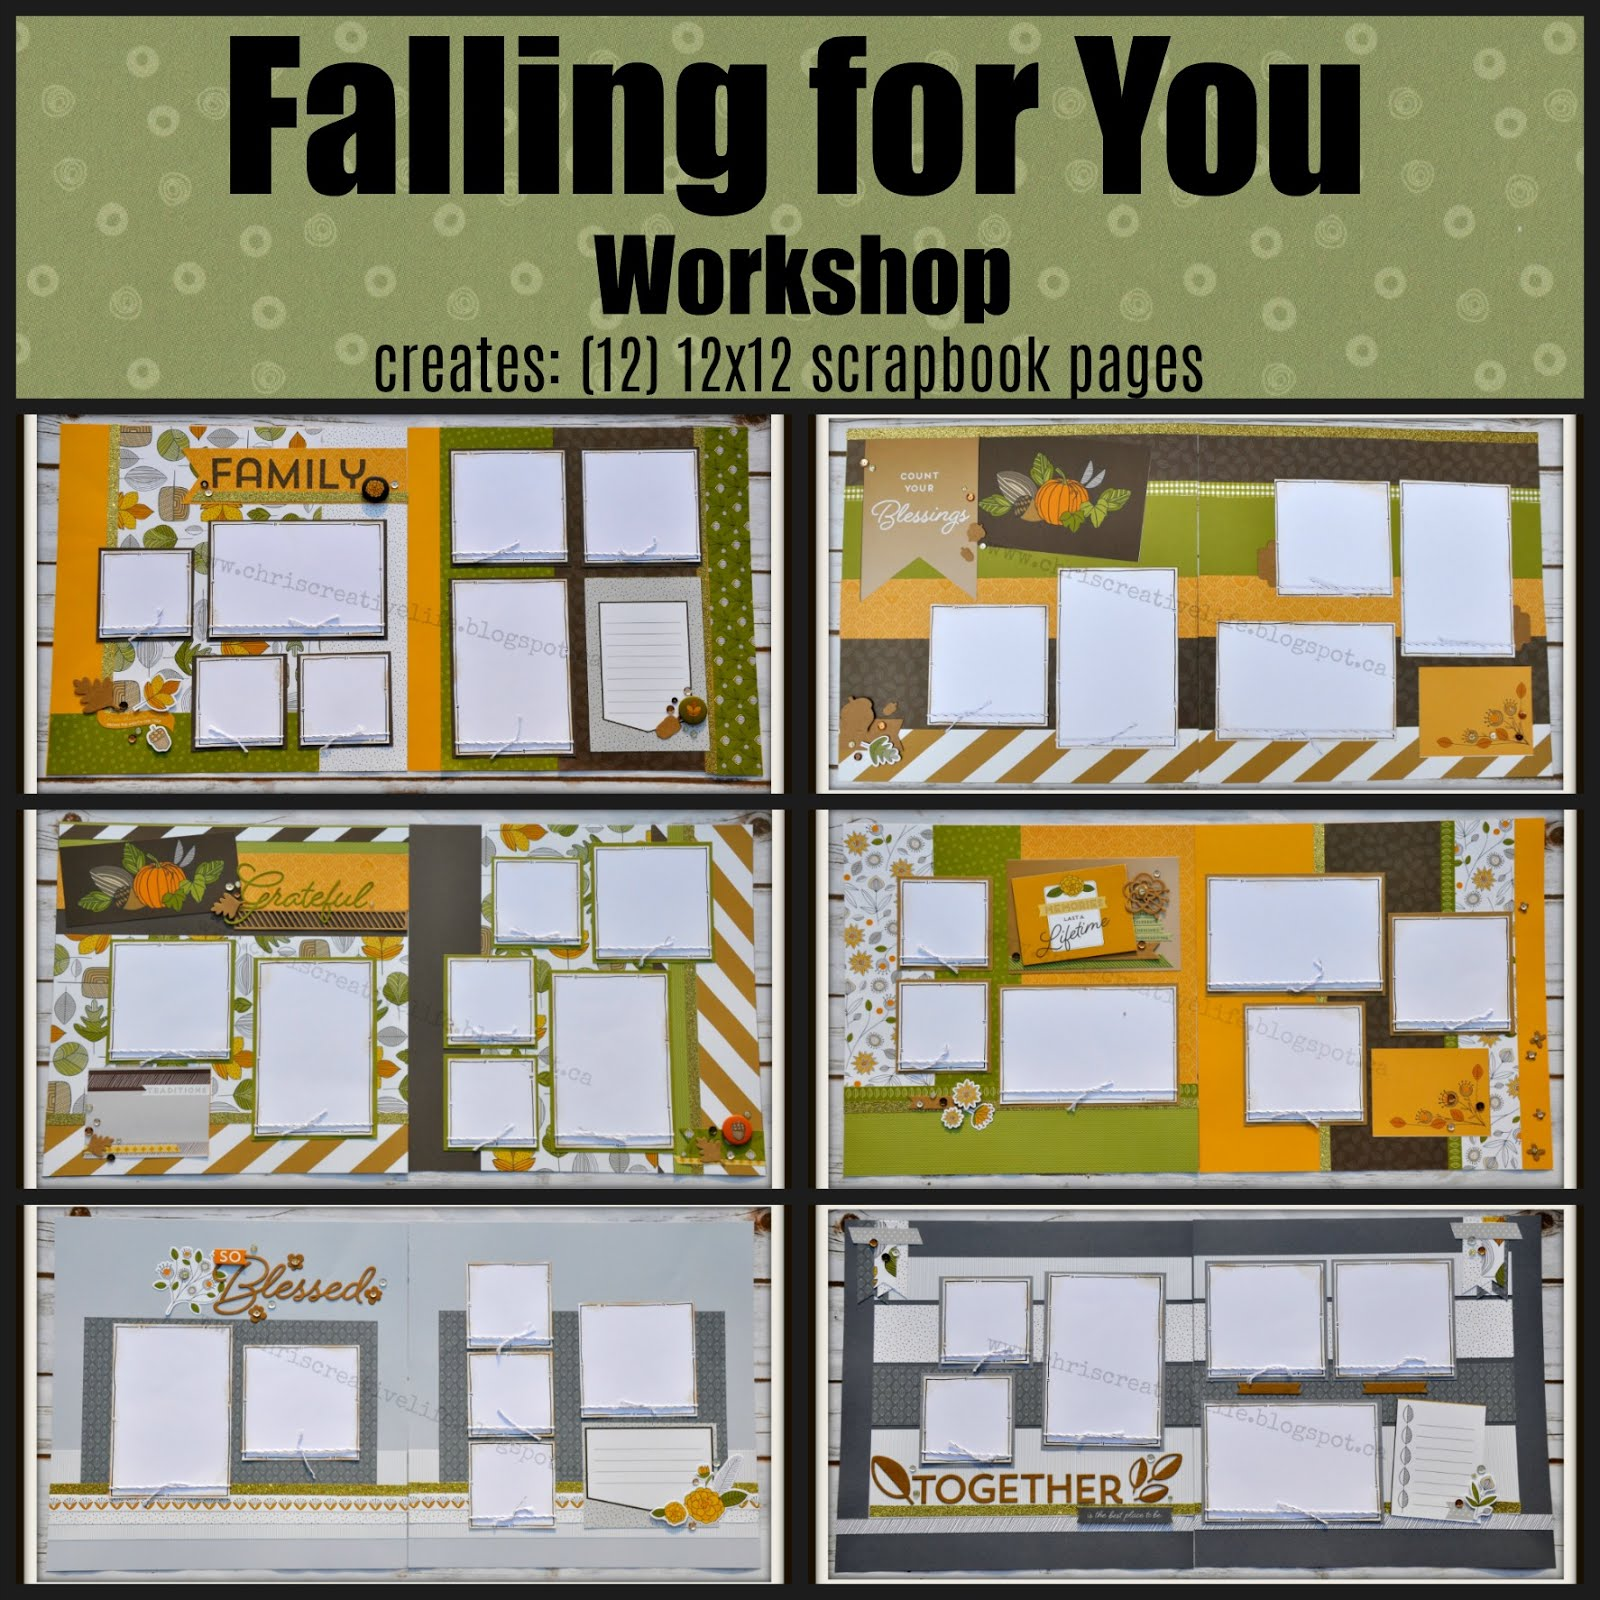 Falling for You Scrapbook Workshop